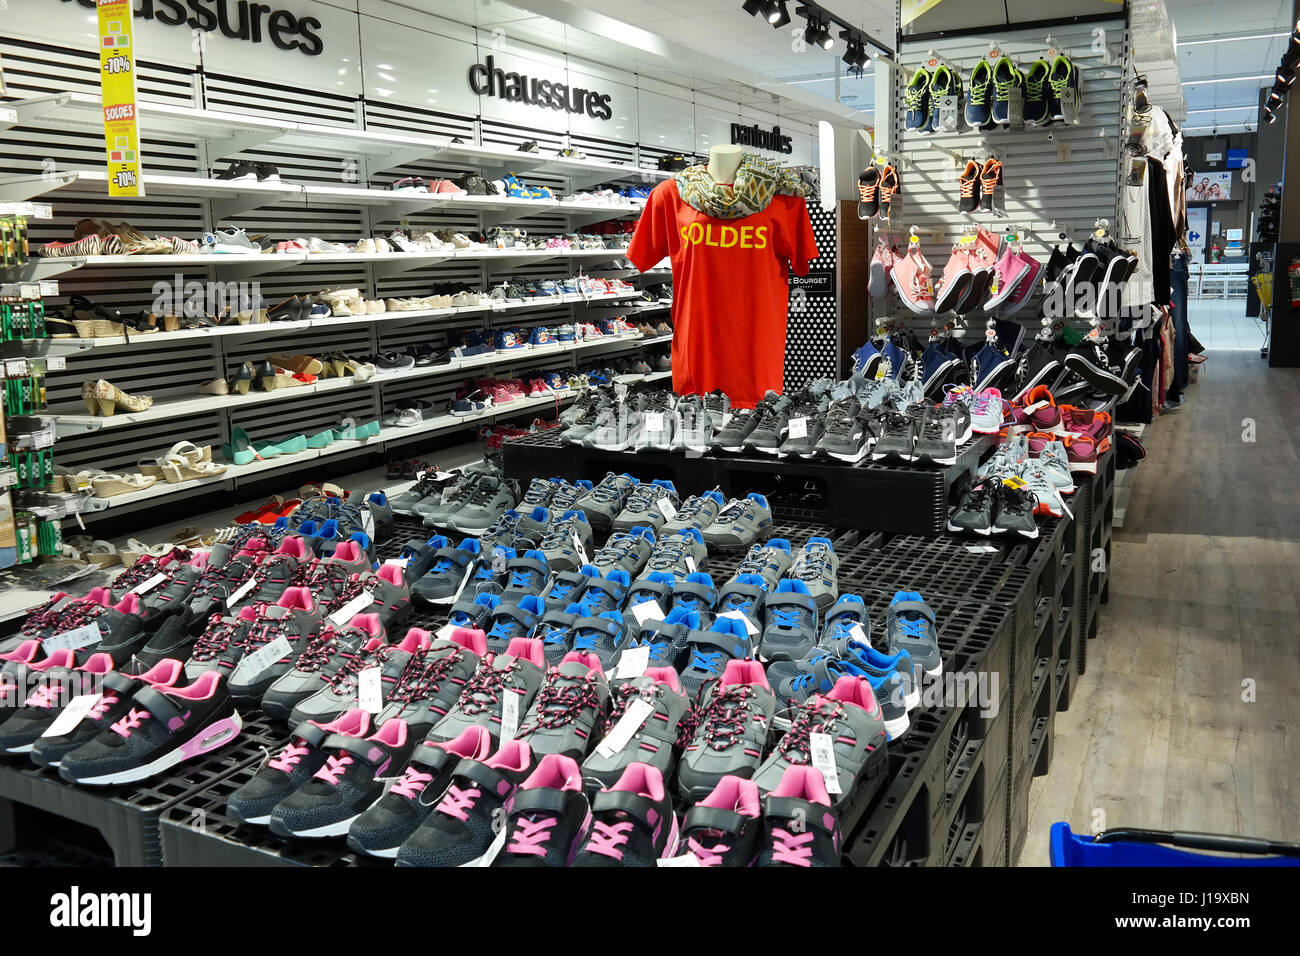 Footwear department of a Carrefour Hypermarket - Stock Image